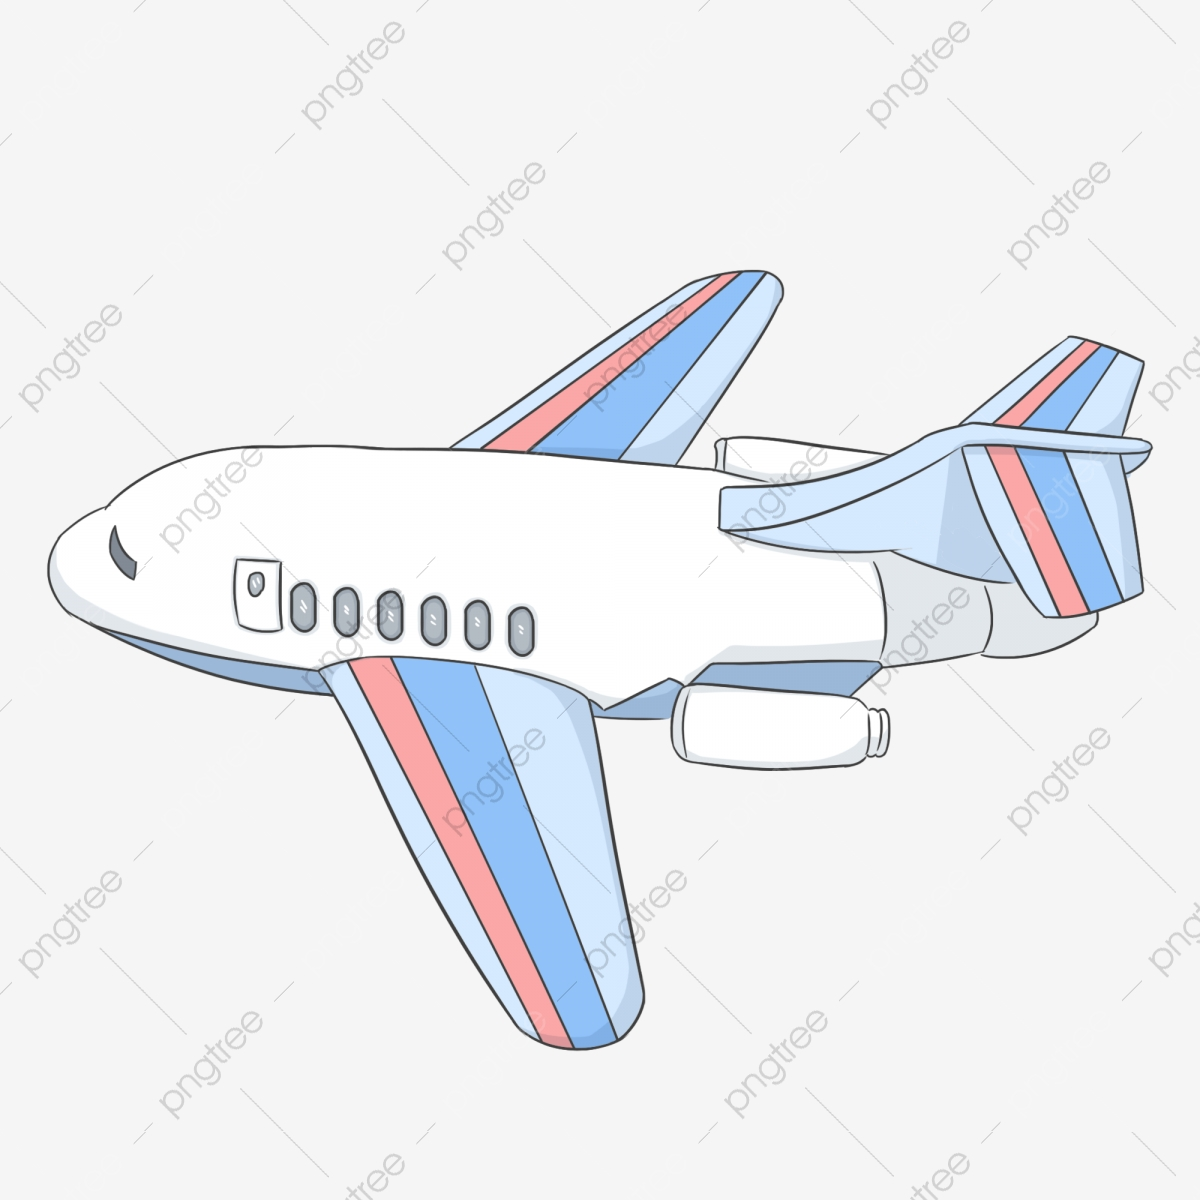 - Aircraft Color Plane White Blue, Red, Hand Painted, Hand Drawn